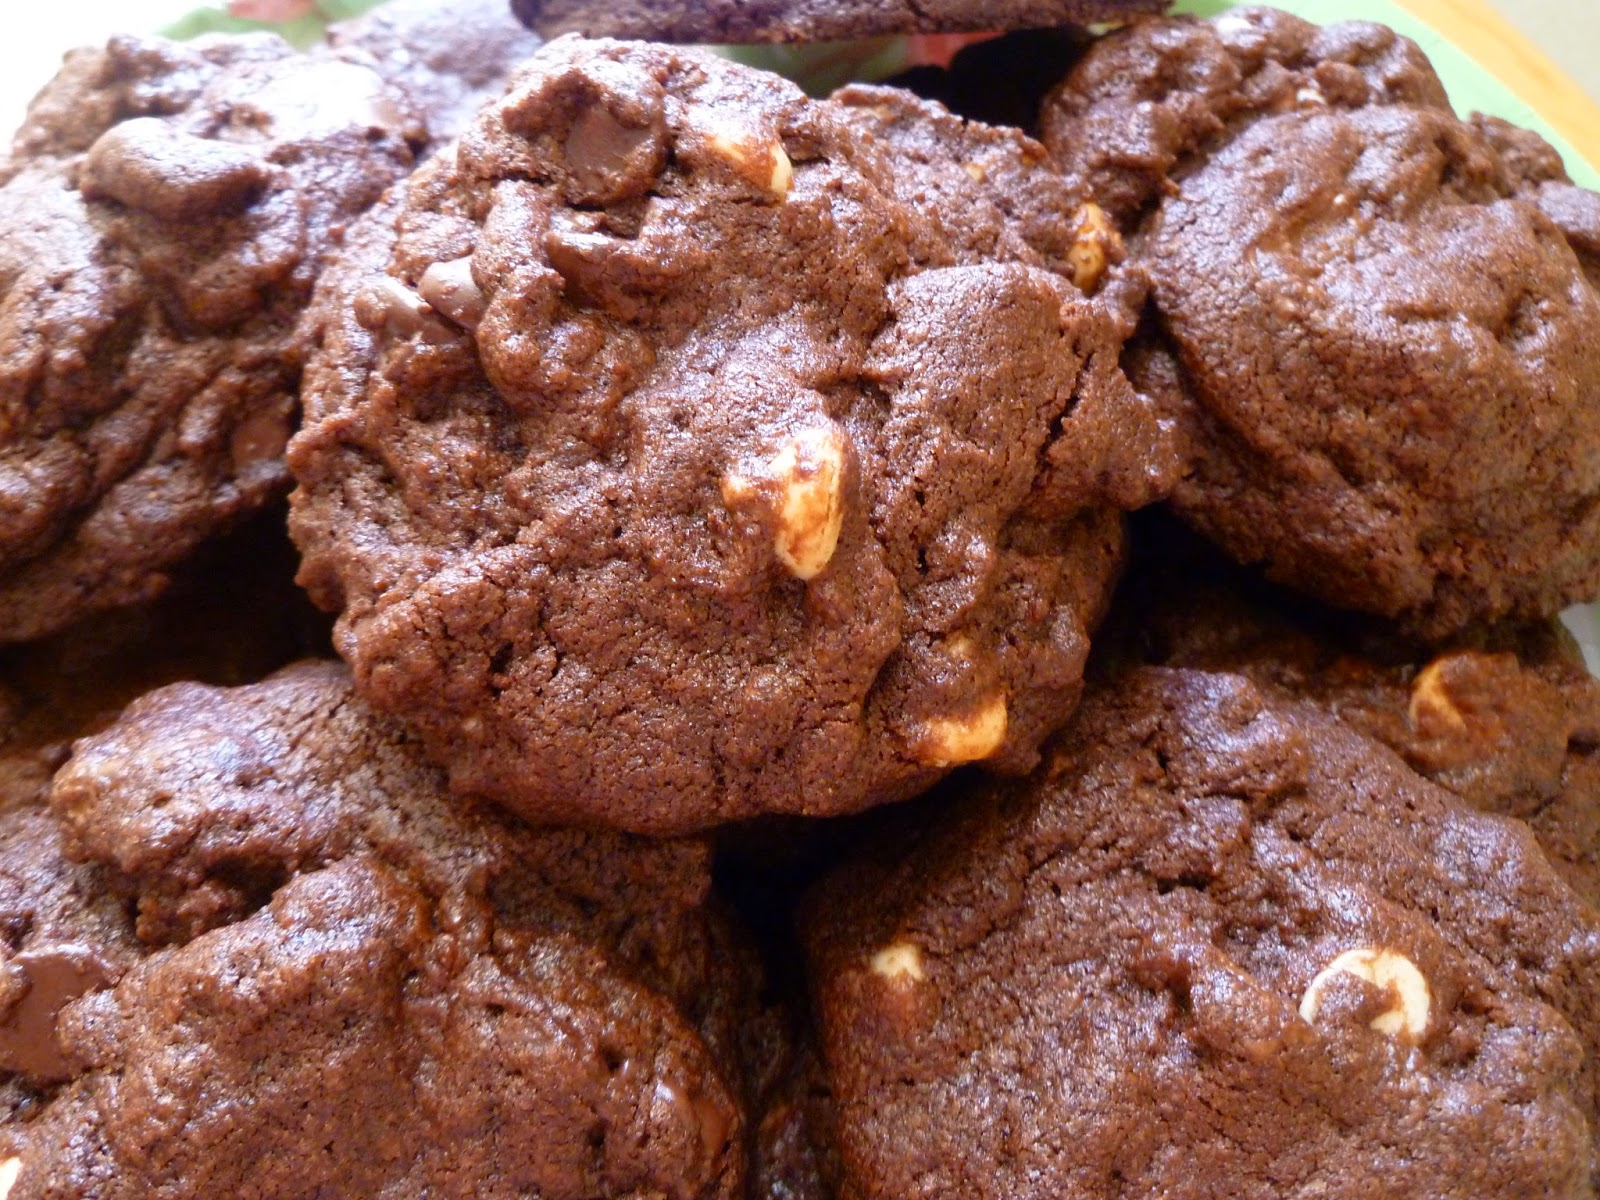 The Pastry Chef's Baking: Death by Chocolate Chocolate Chip Cookies